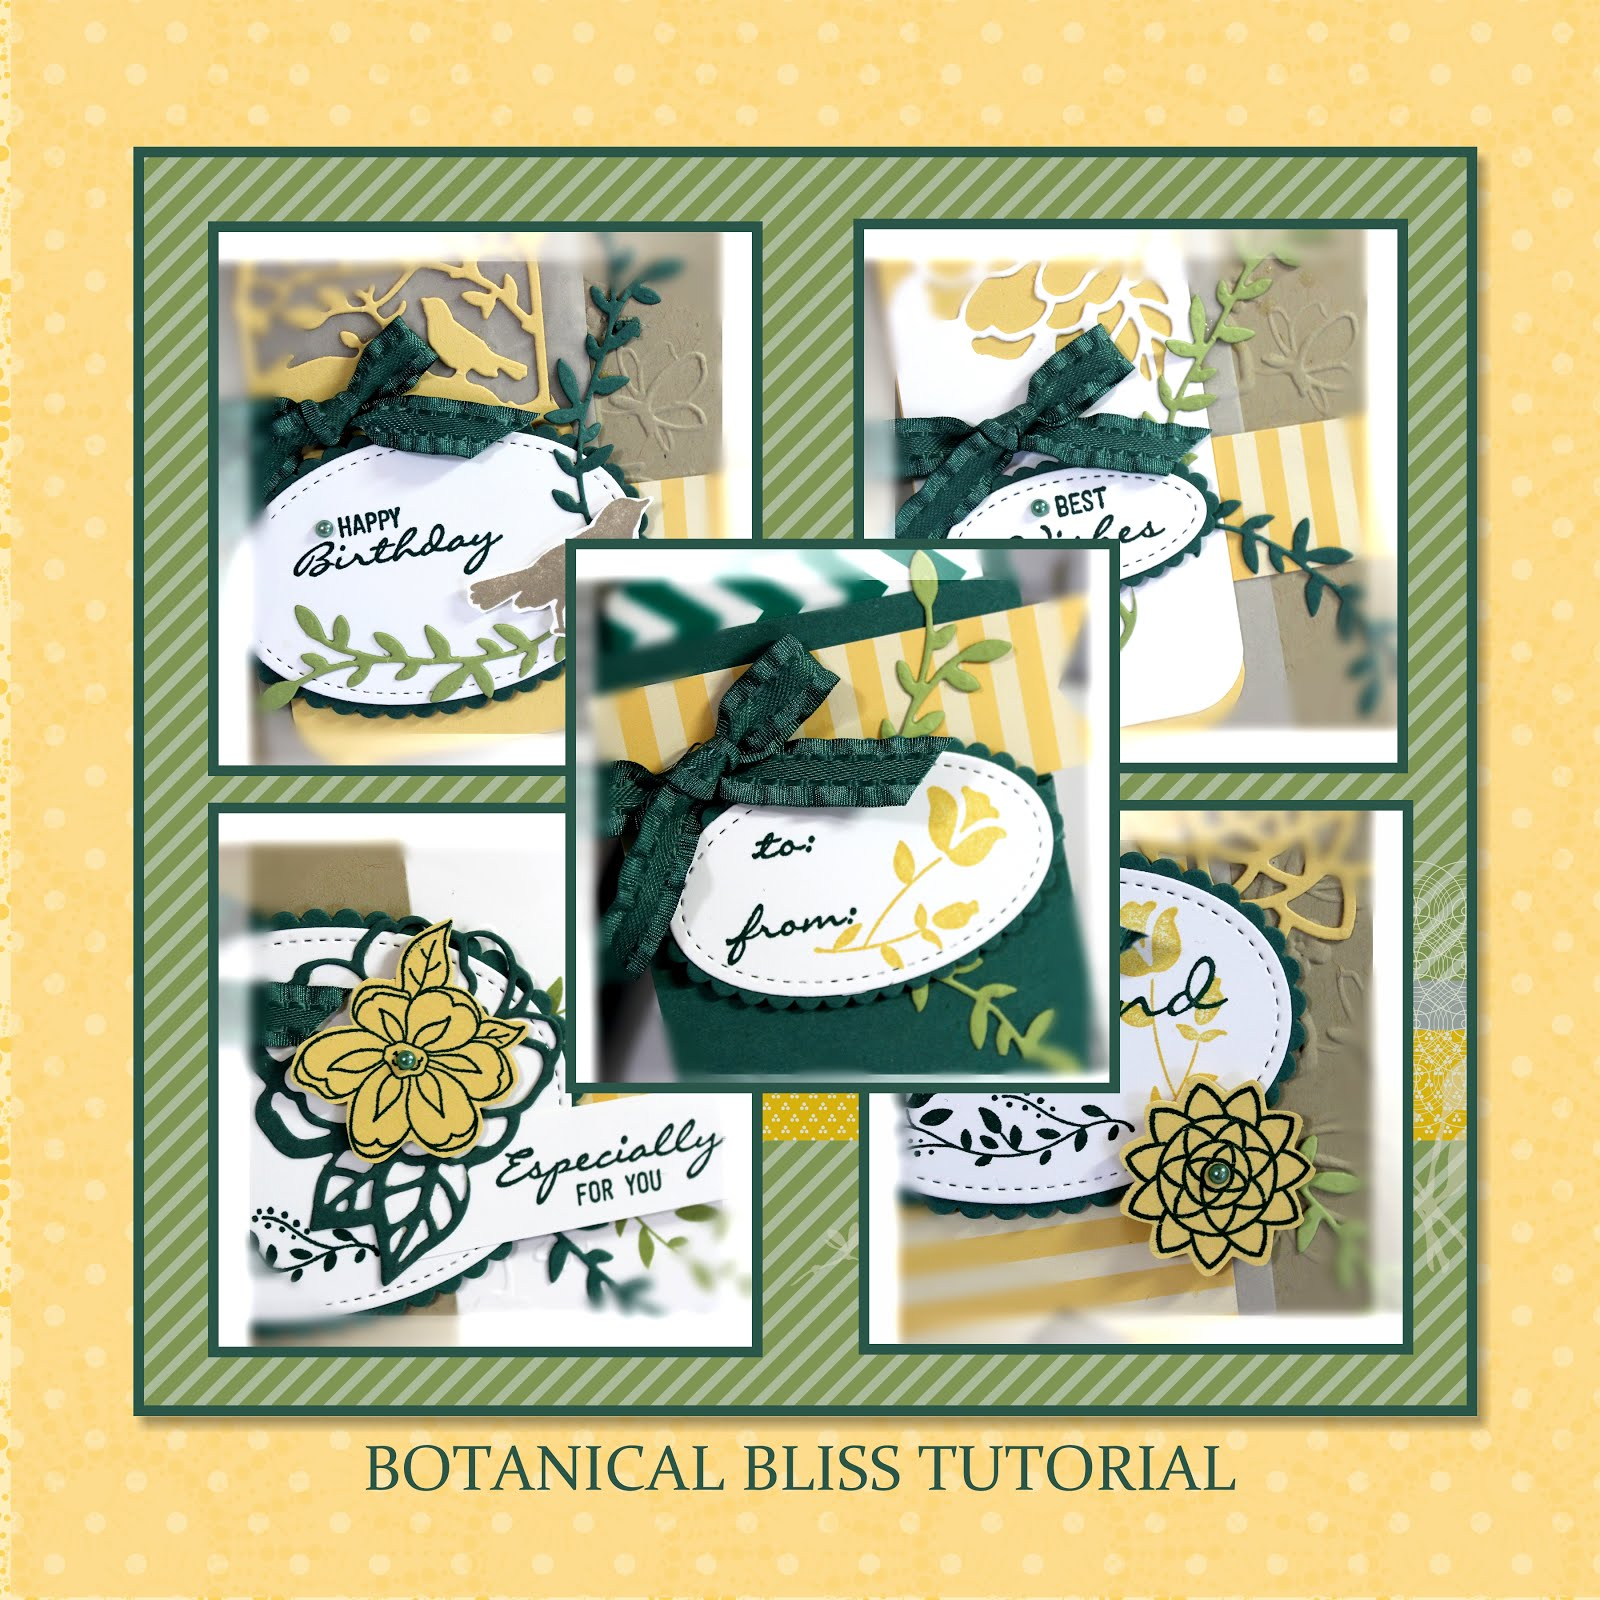 August 2018 Botanical Bliss Tutorial